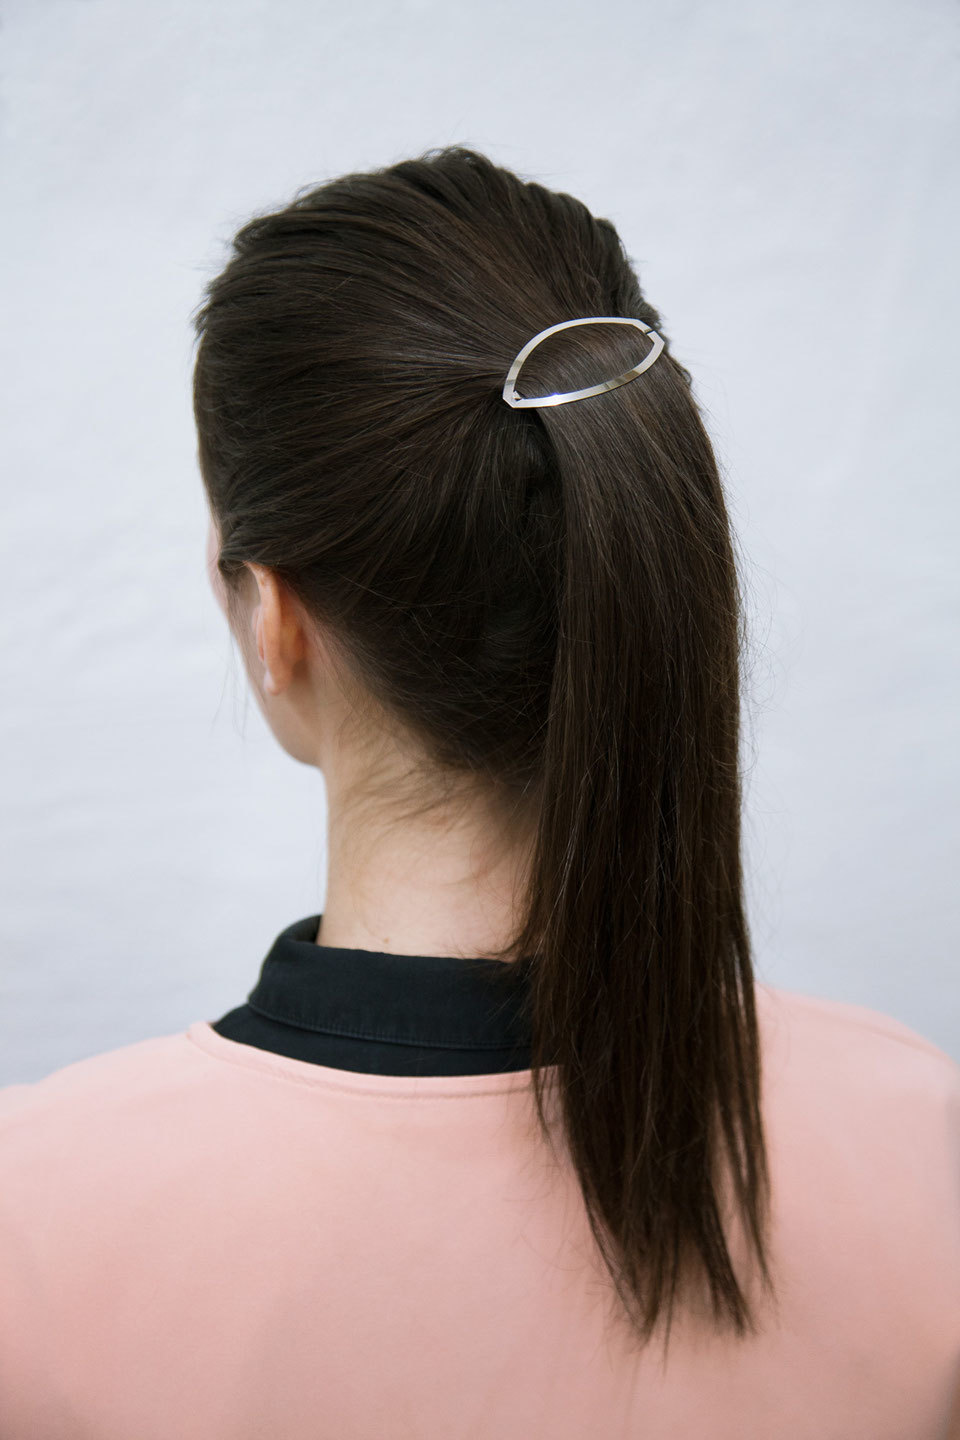 CLINQ HAIR ACCESSORIES_c0176078_12371771.jpg